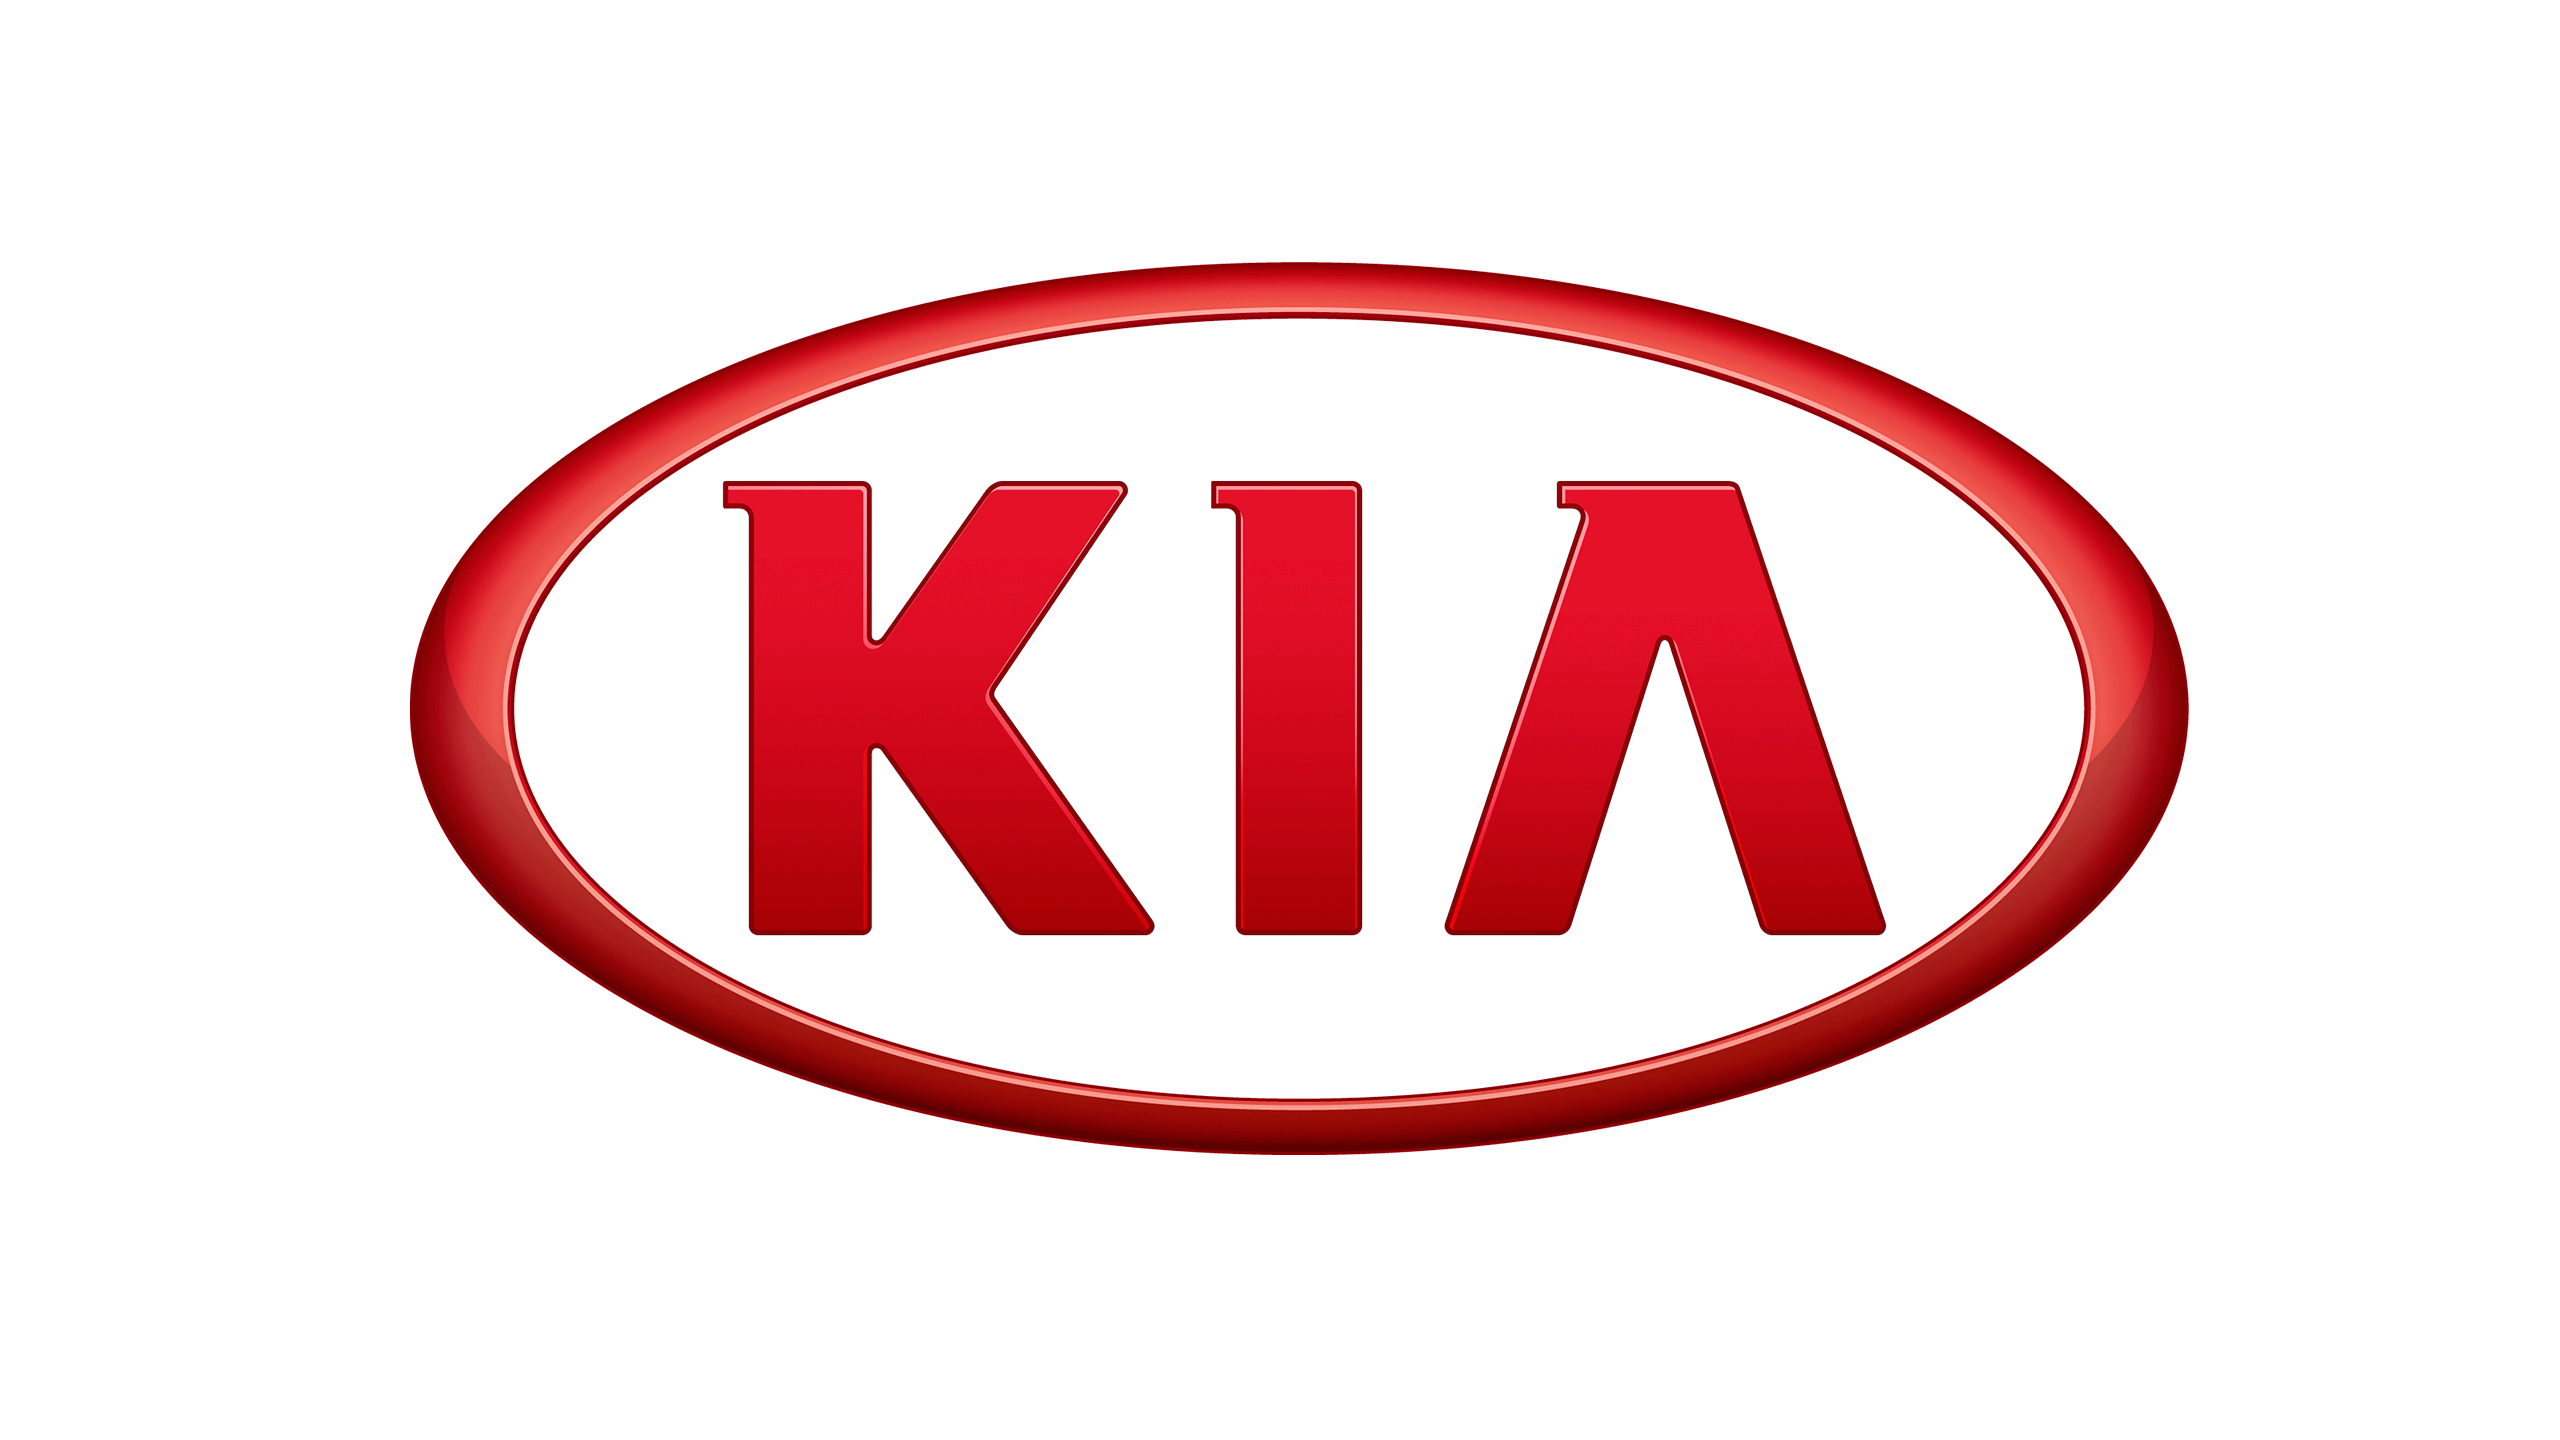 Car Logo Kia transparent PNG.